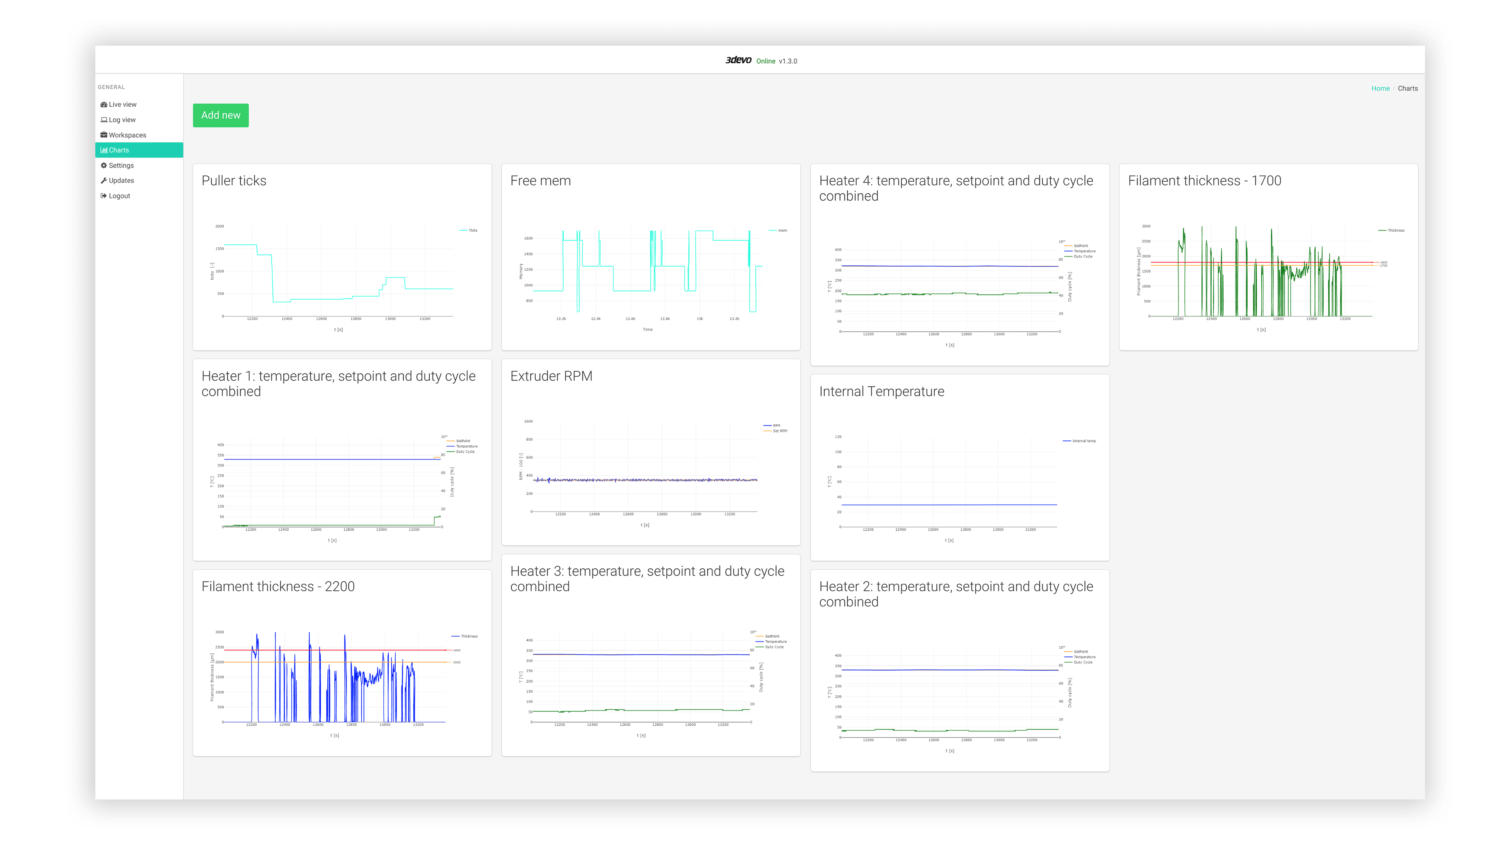 3devo extrusion 3d printing application dashboard overview